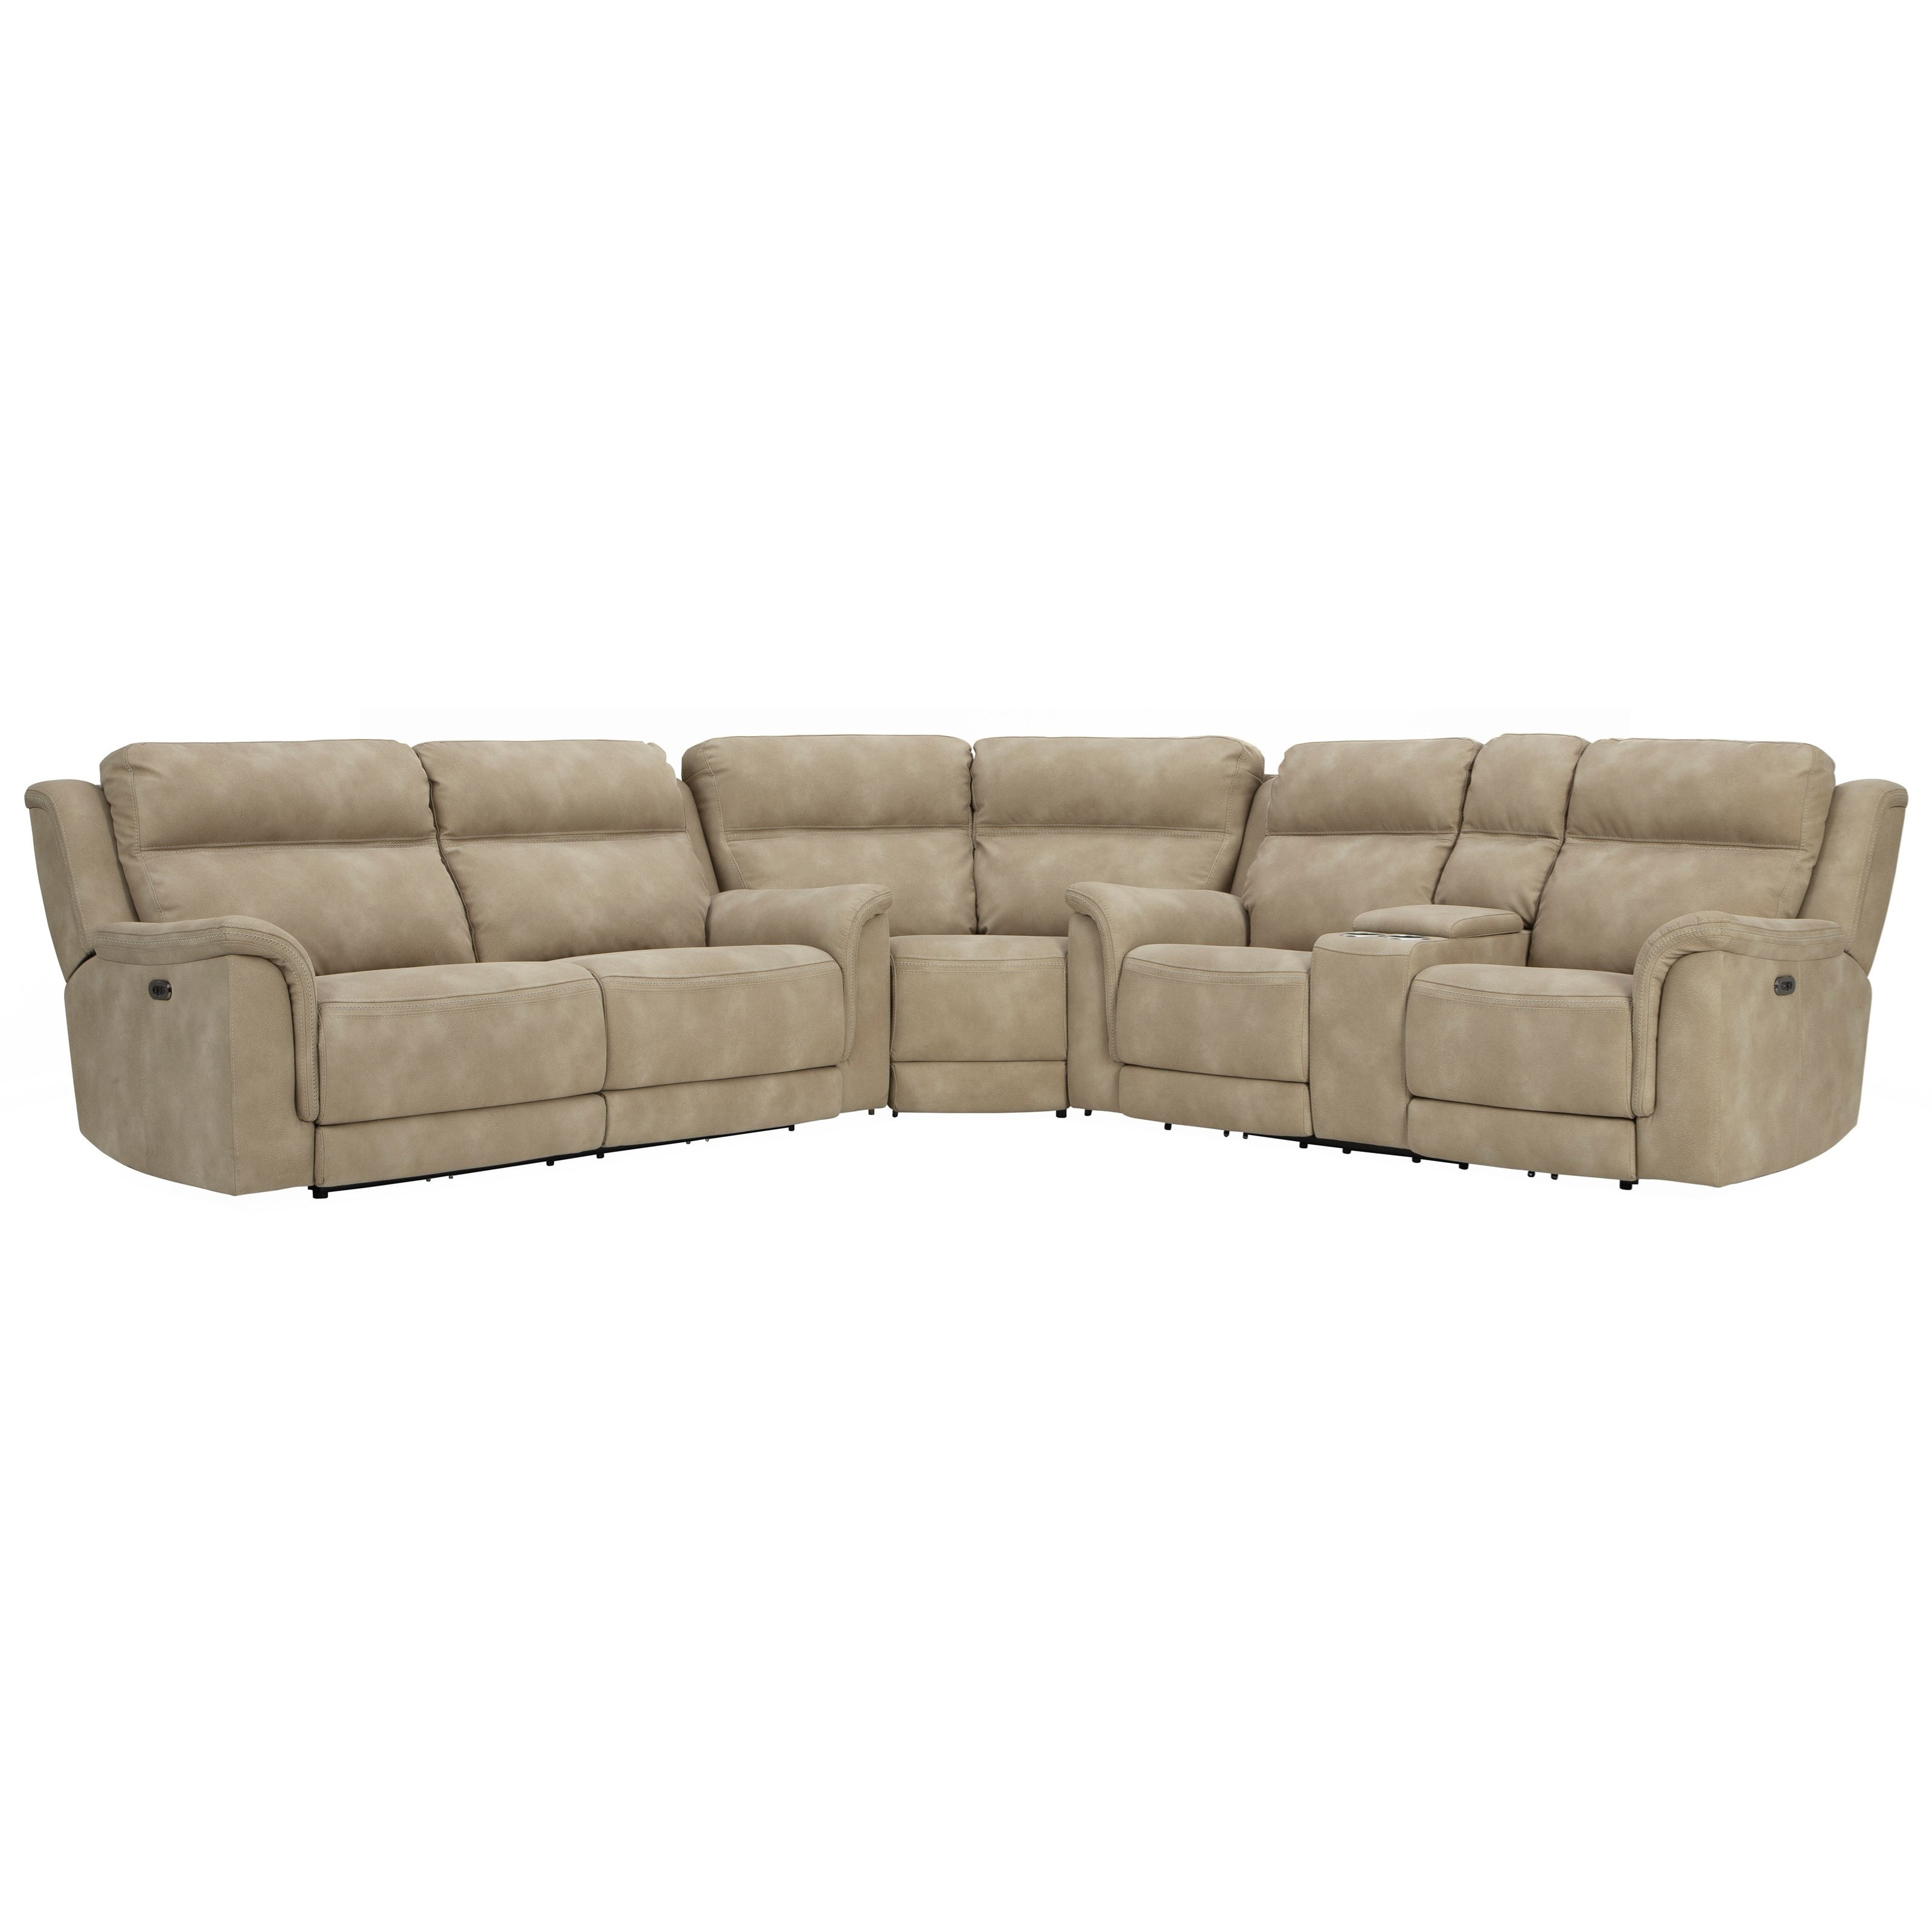 Next-Gen DuraPella Pwr Reclining Sectional with Adj Headrests by Signature Design by Ashley at Value City Furniture